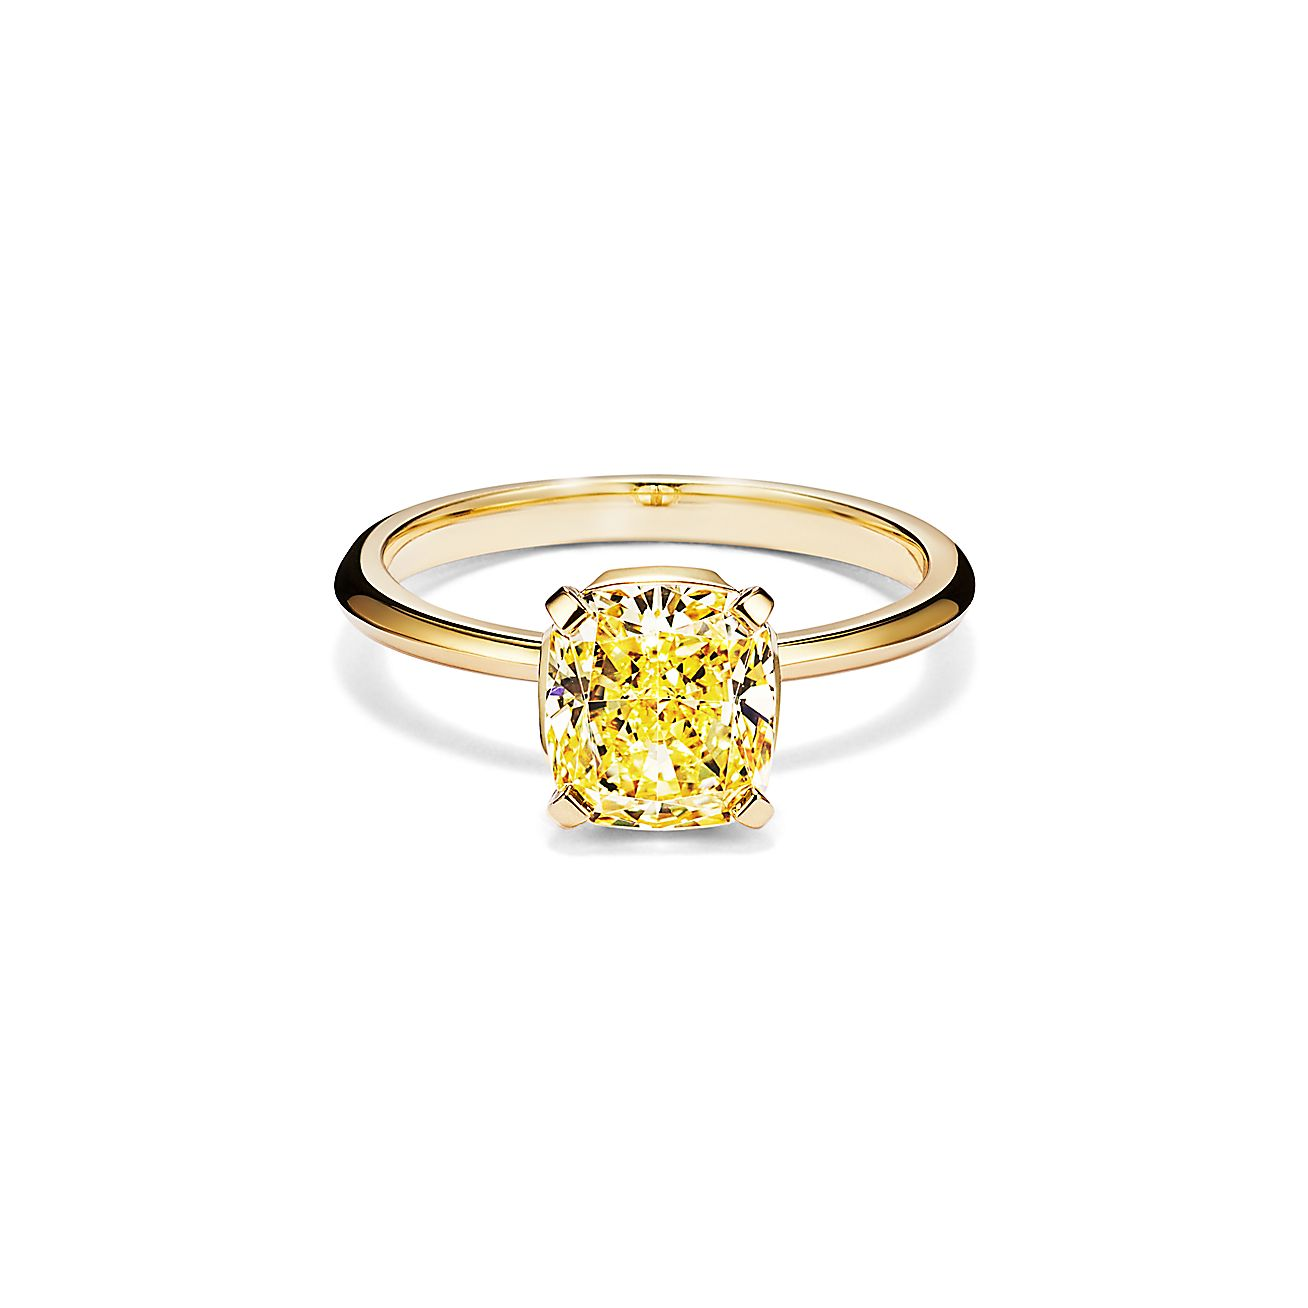 Tiffany True Engagement Ring With A Cushion Cut Yellow Diamond In 18k Yellow Gold